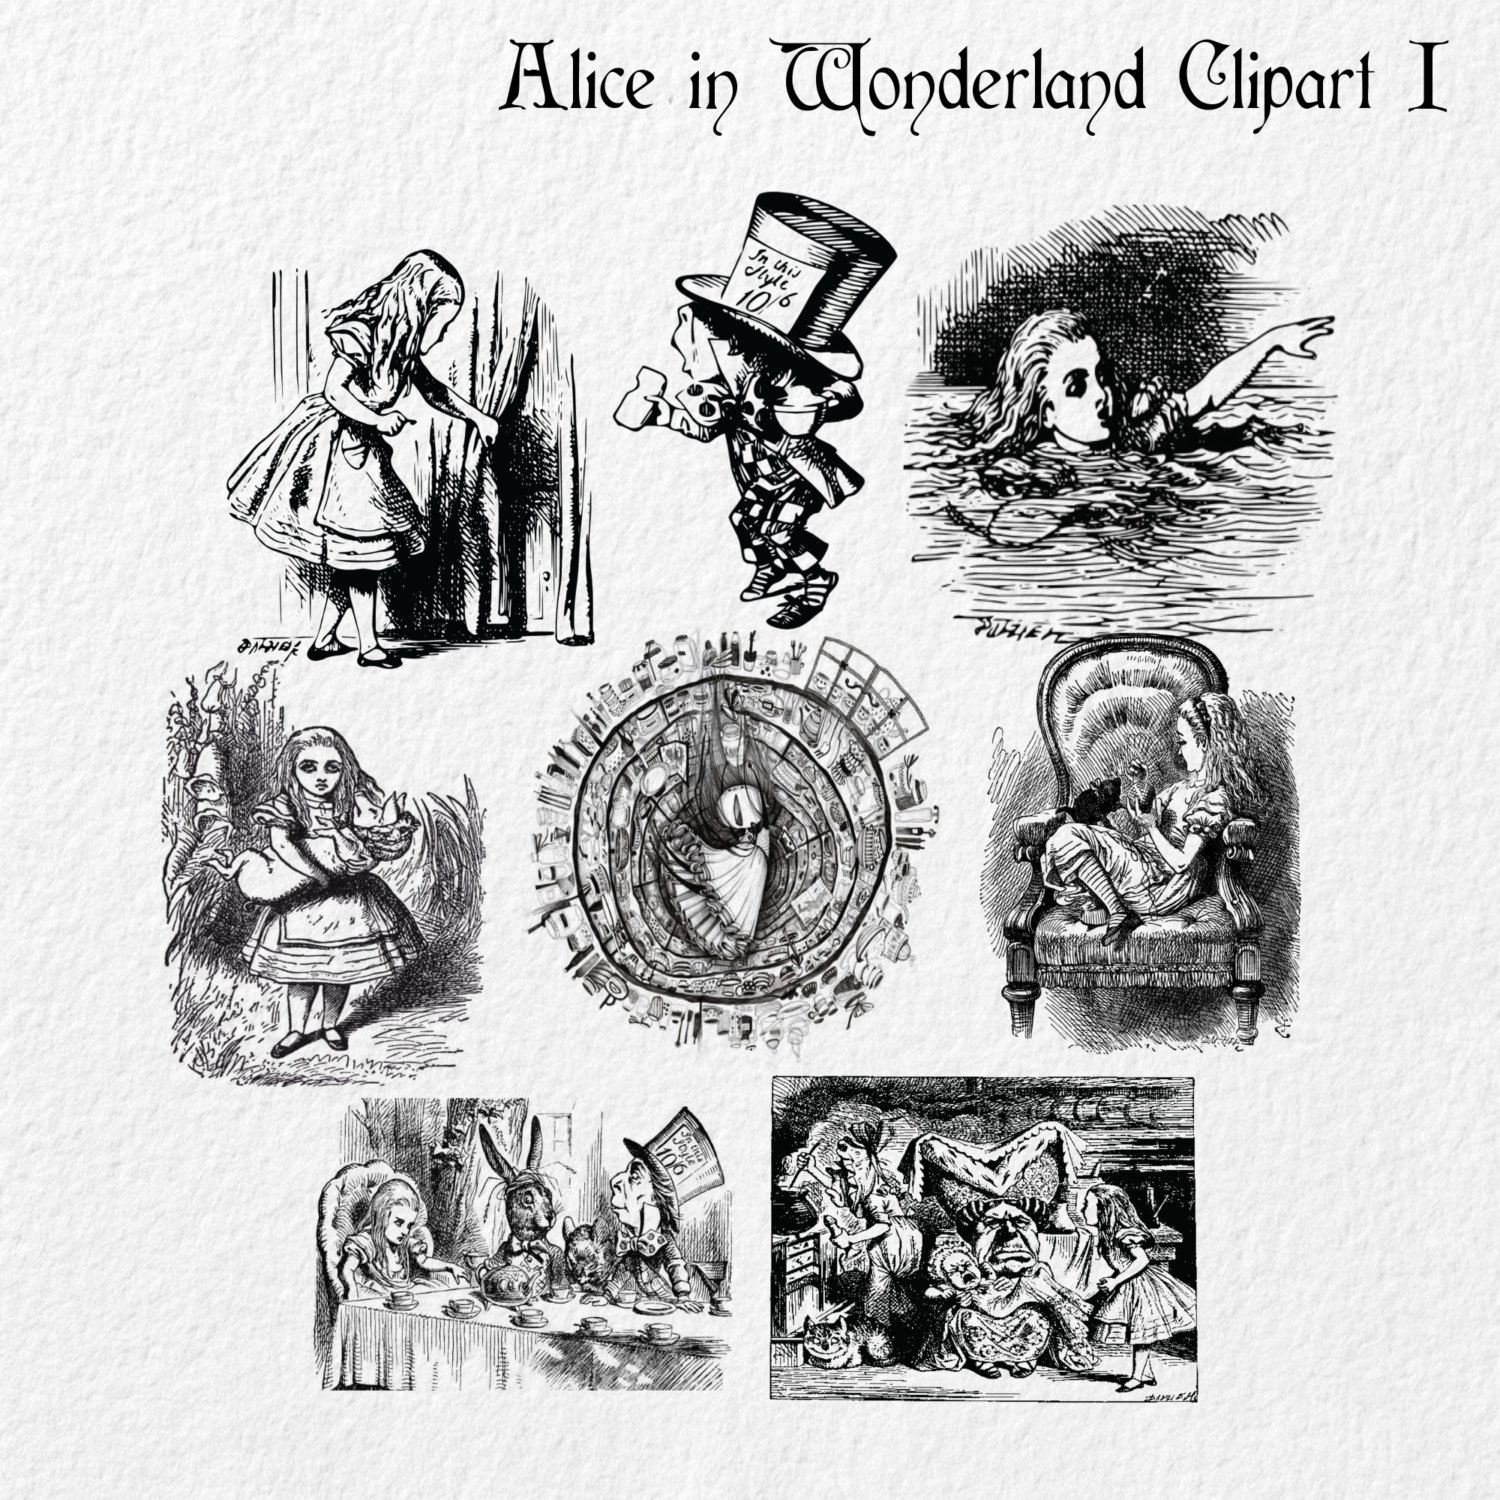 Steampunk clipart alice in wonderland. Vintage clip art